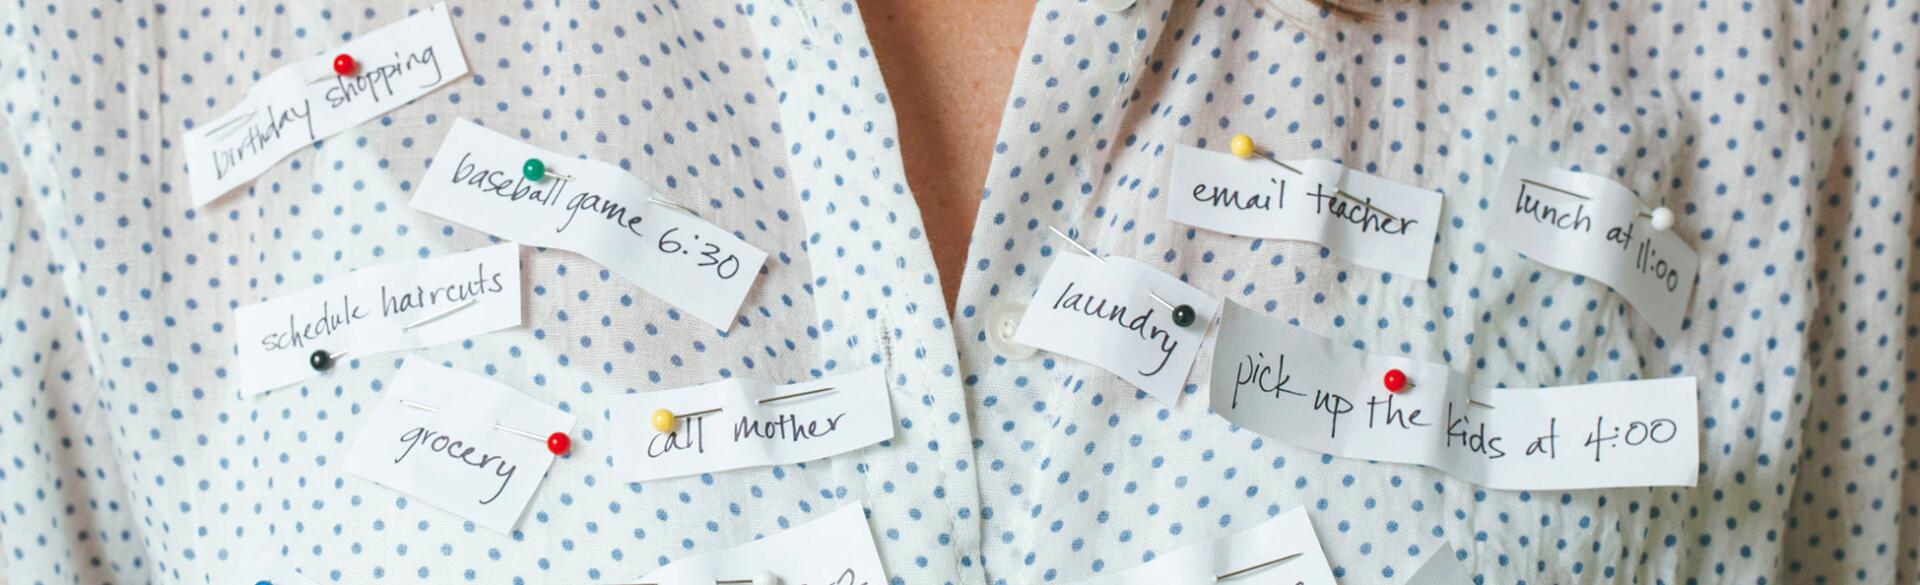 Busy Woman With Reminders Pinned To Her Shirt